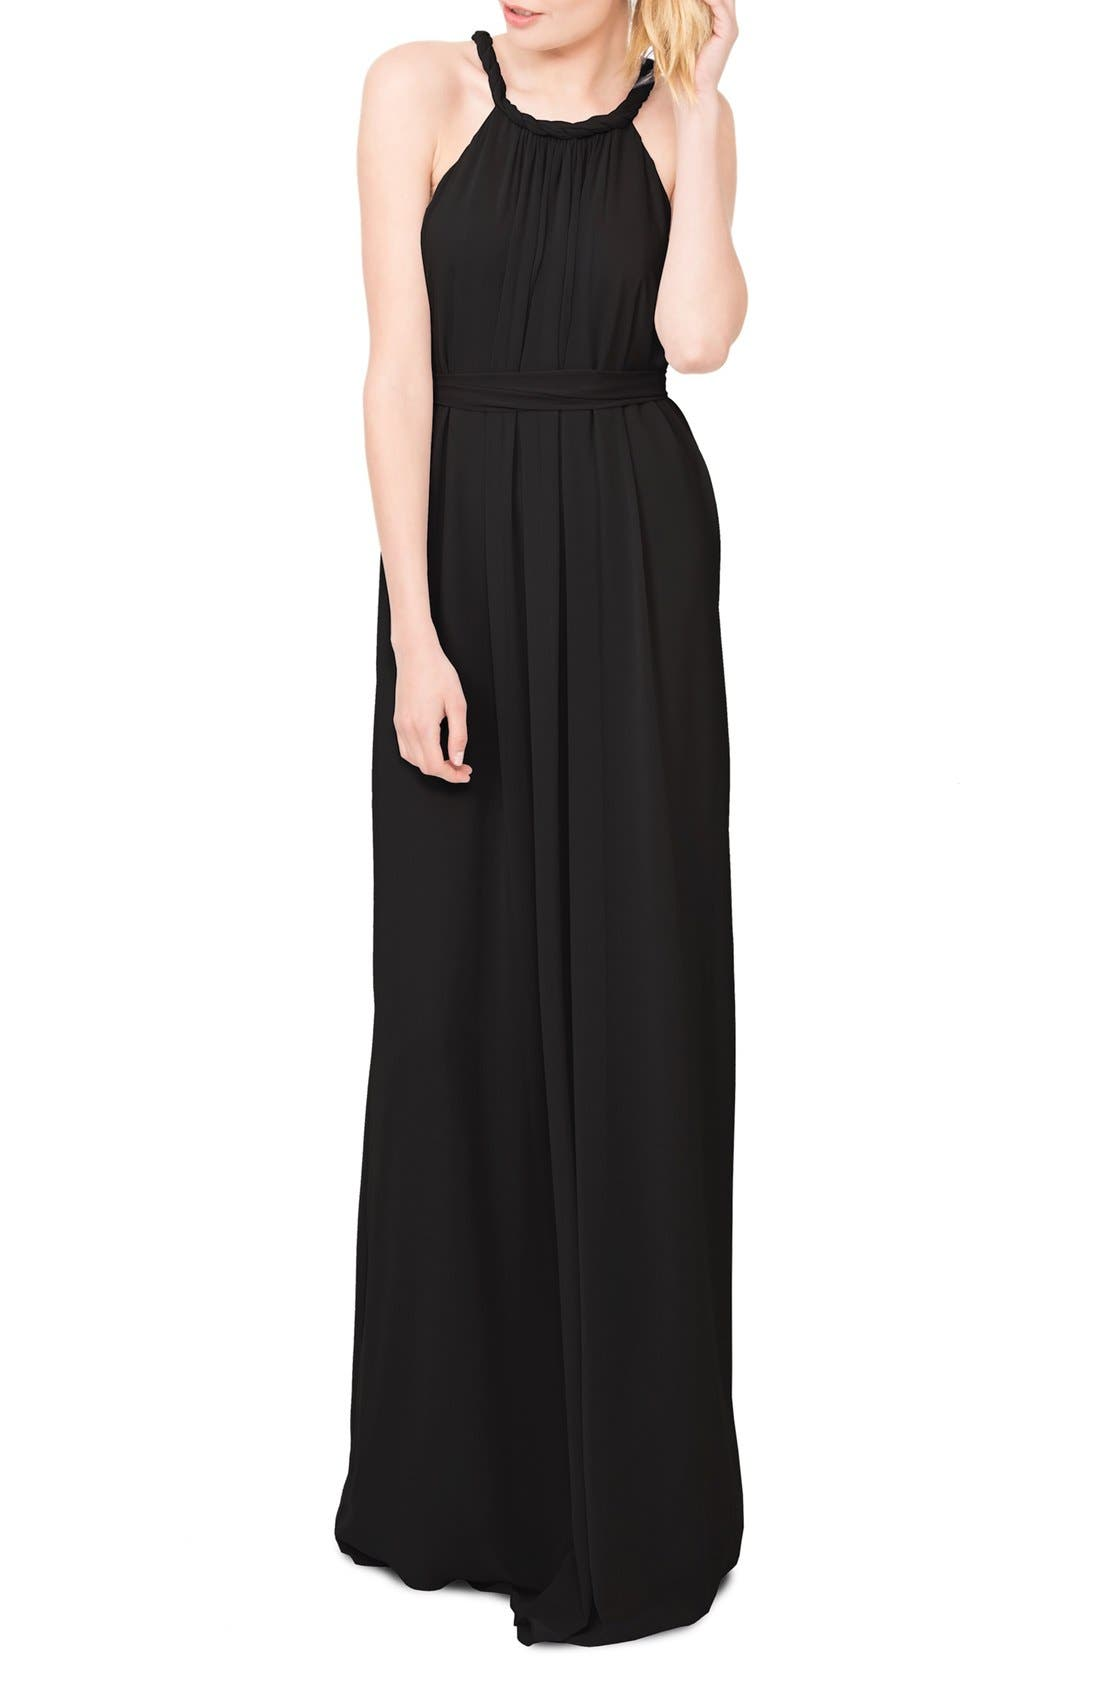 Ceremony by Joanna August 'Catherine' Braided Halter A-Line Gown